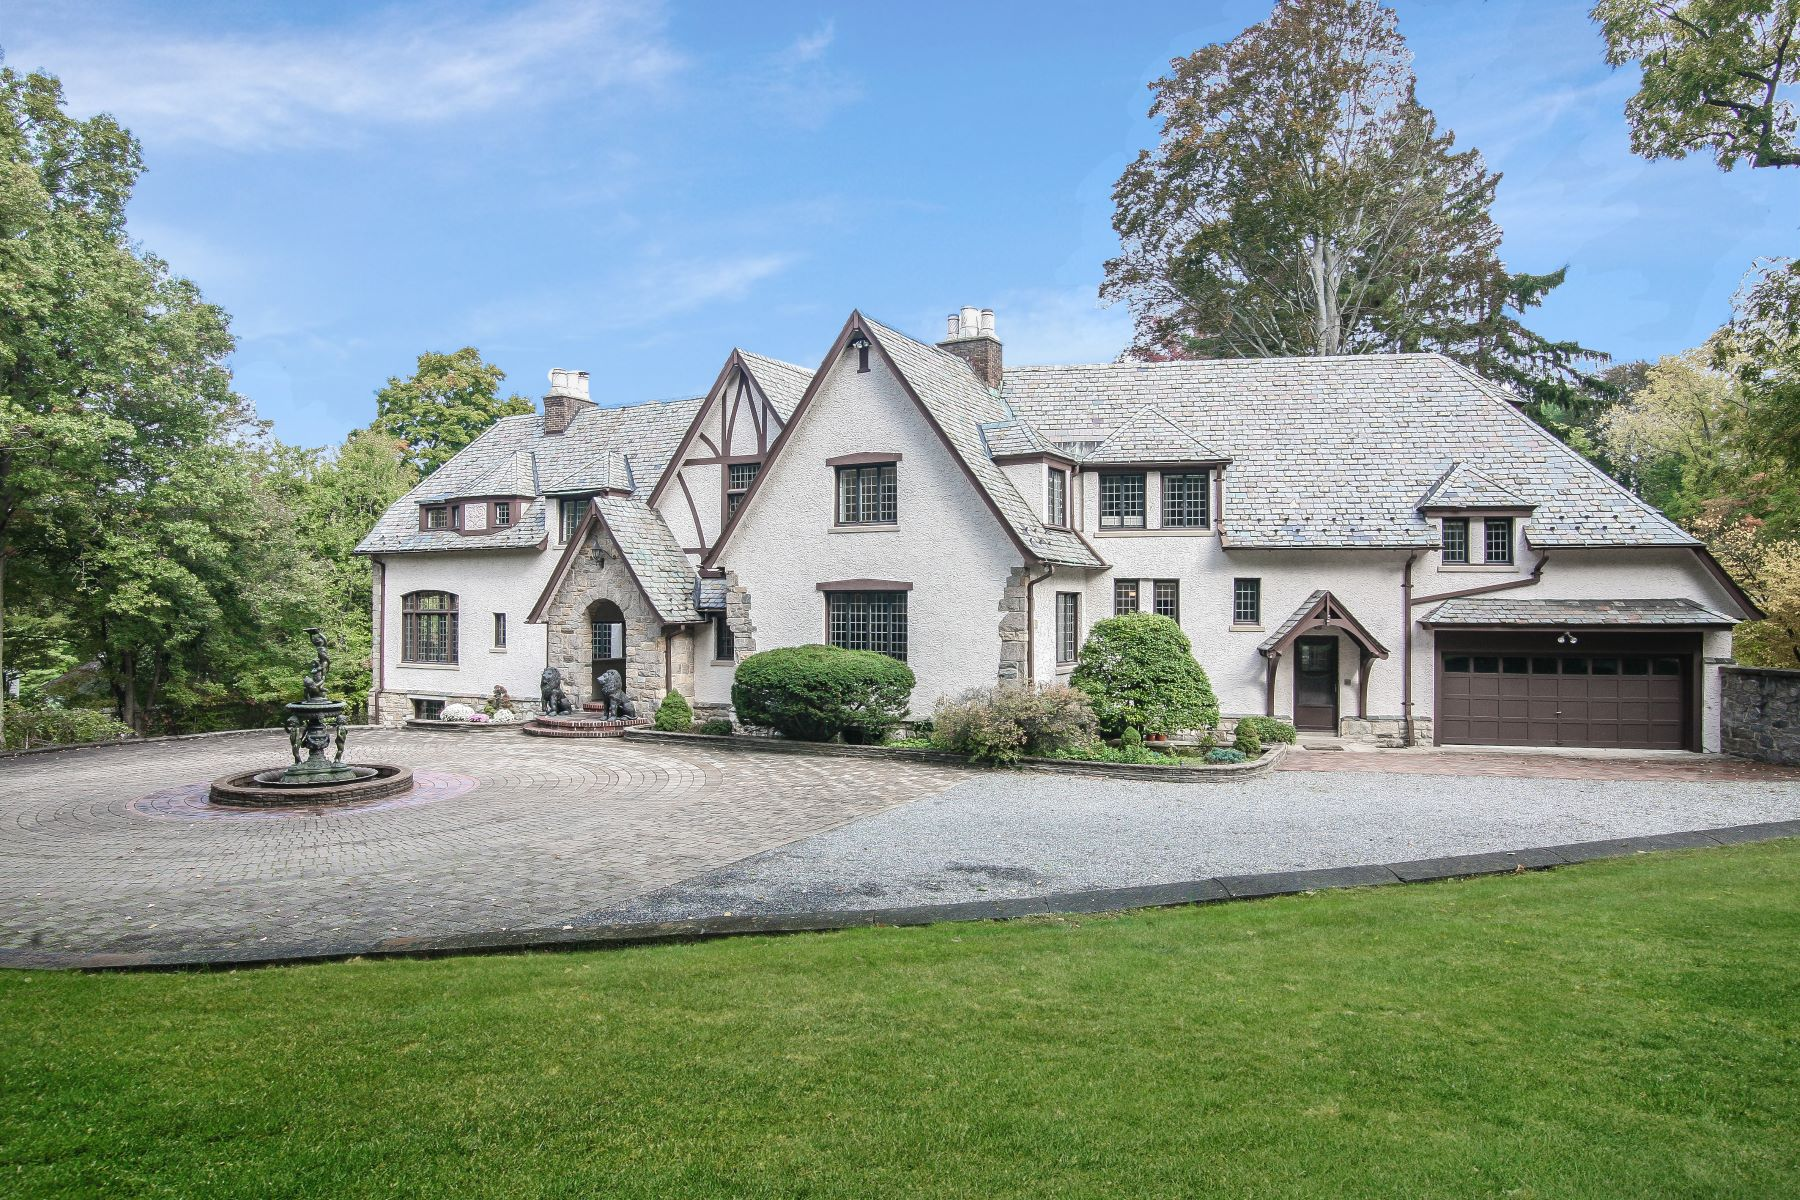 Single Family Homes för Försäljning vid Luxurious Living in this Majestic English Manor 41 North Broadway, Irvington, New York 10533 Förenta staterna